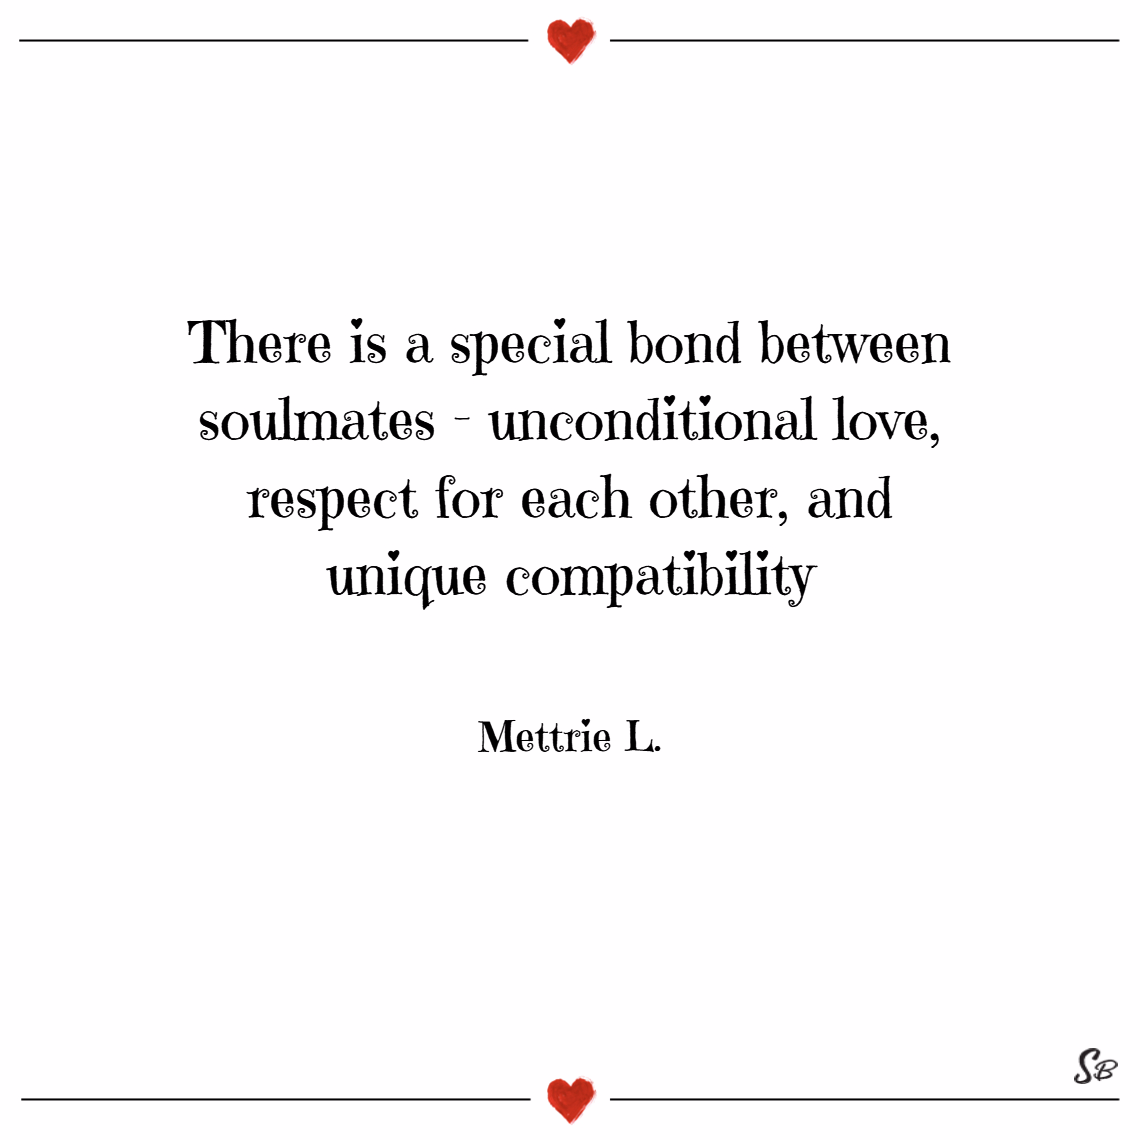 There is a special bond between soulmates – unconditional love, respect for each other, and unique compatibility. – mettrie l.